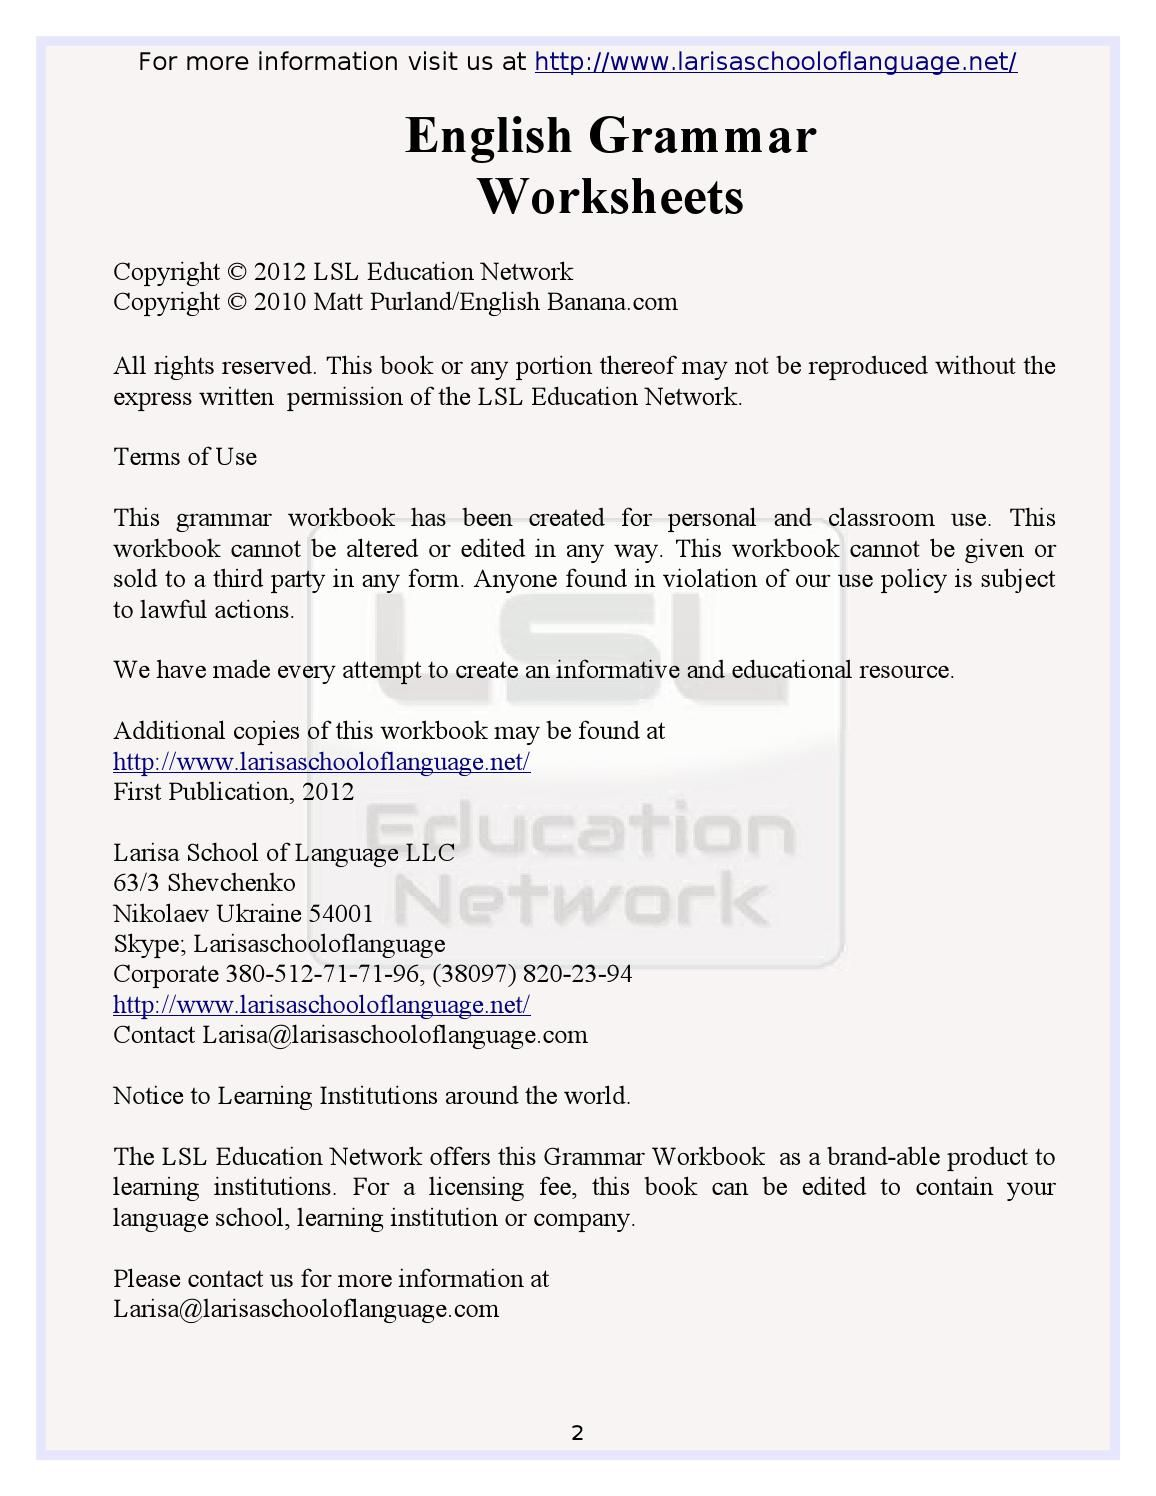 worksheet English Grammar For Adults Worksheets 101 english grammar worksheets for learners learners